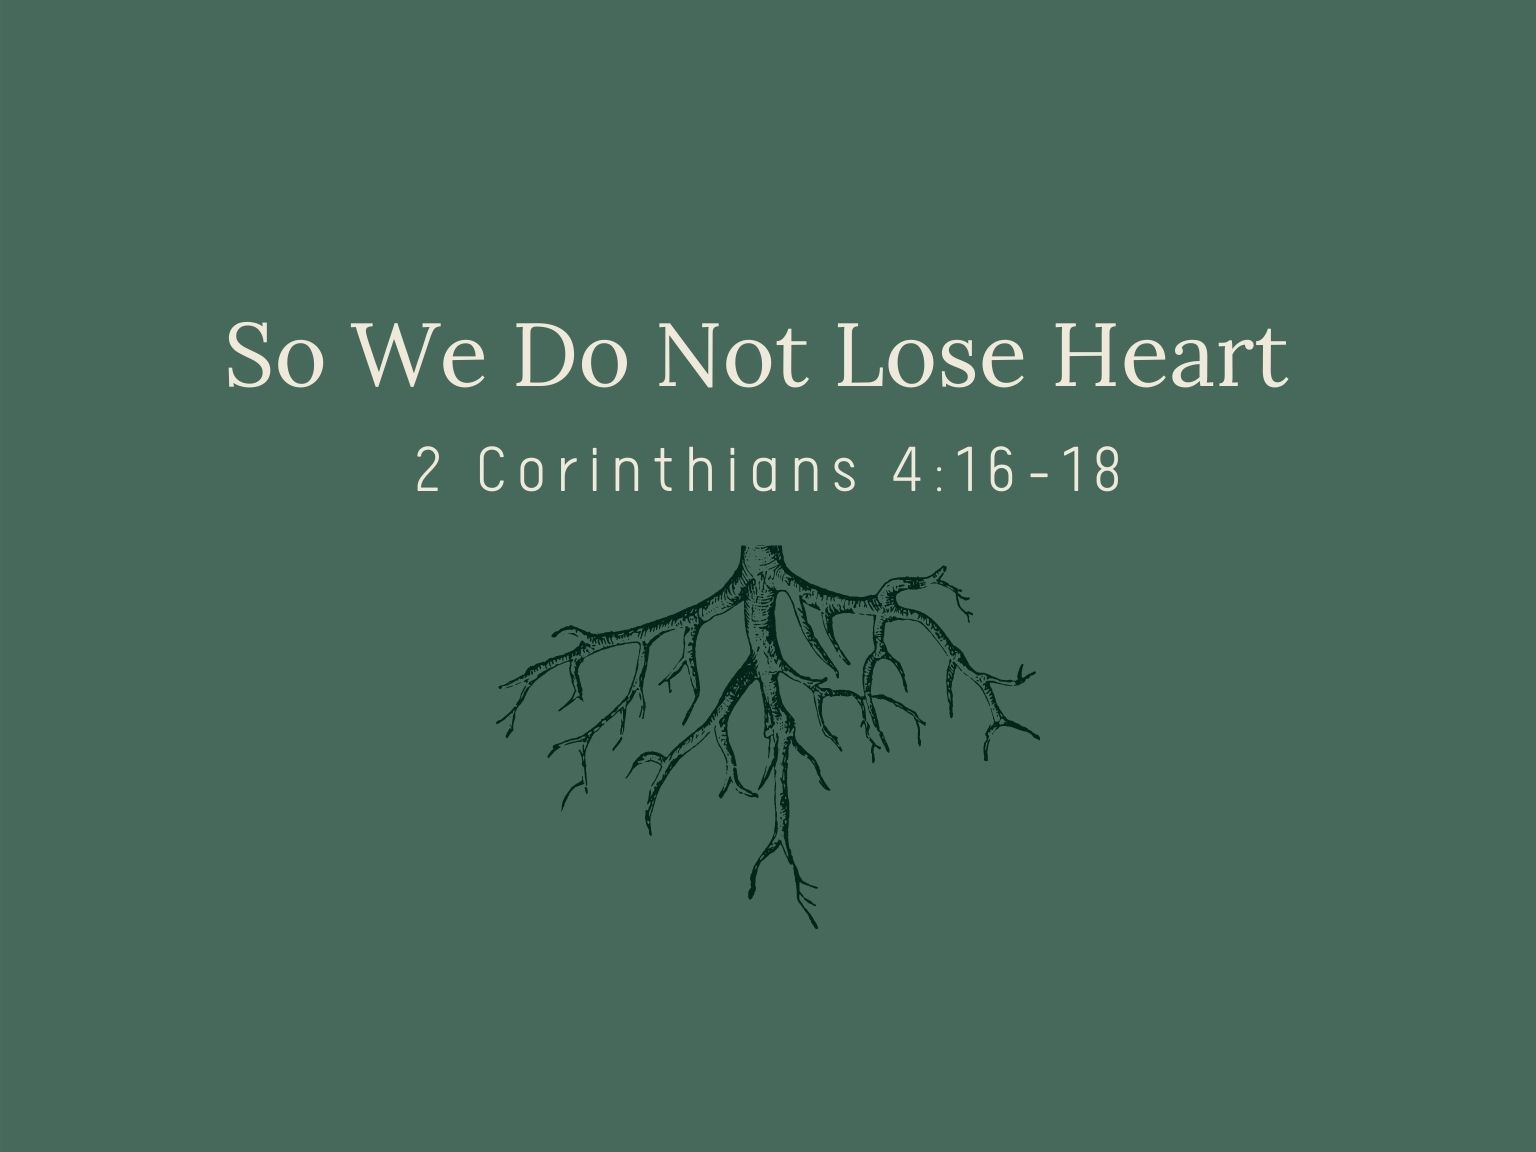 So We Do Not Lose Heart